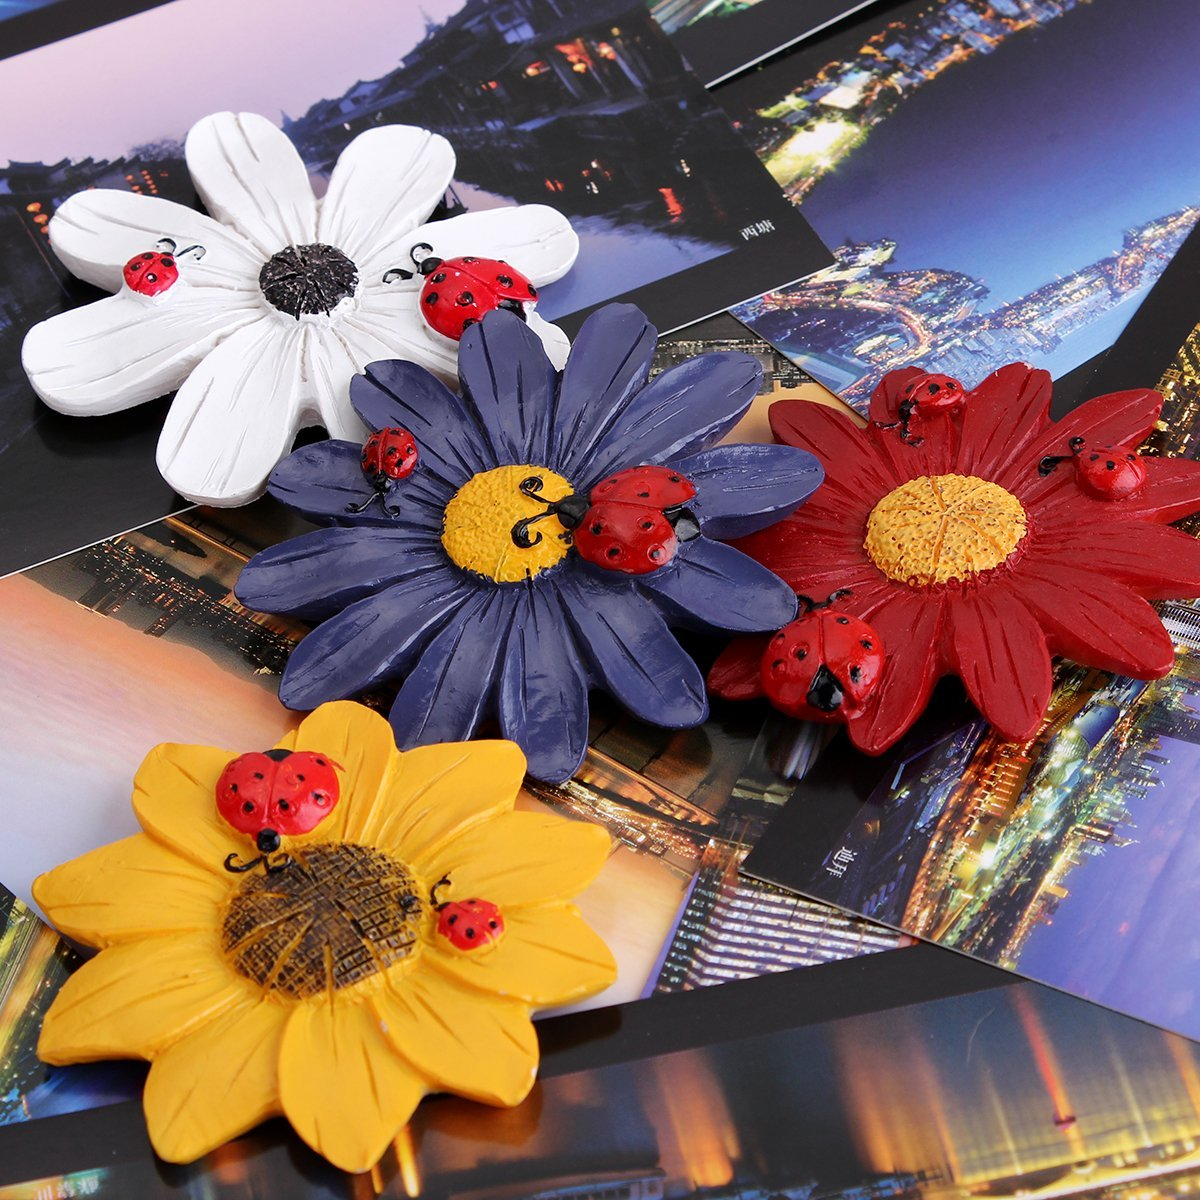 AmyHomie Home Office Whiteboard Flower Design Fridge Refrigerator Magnets,4 pcs photo magnet for ...